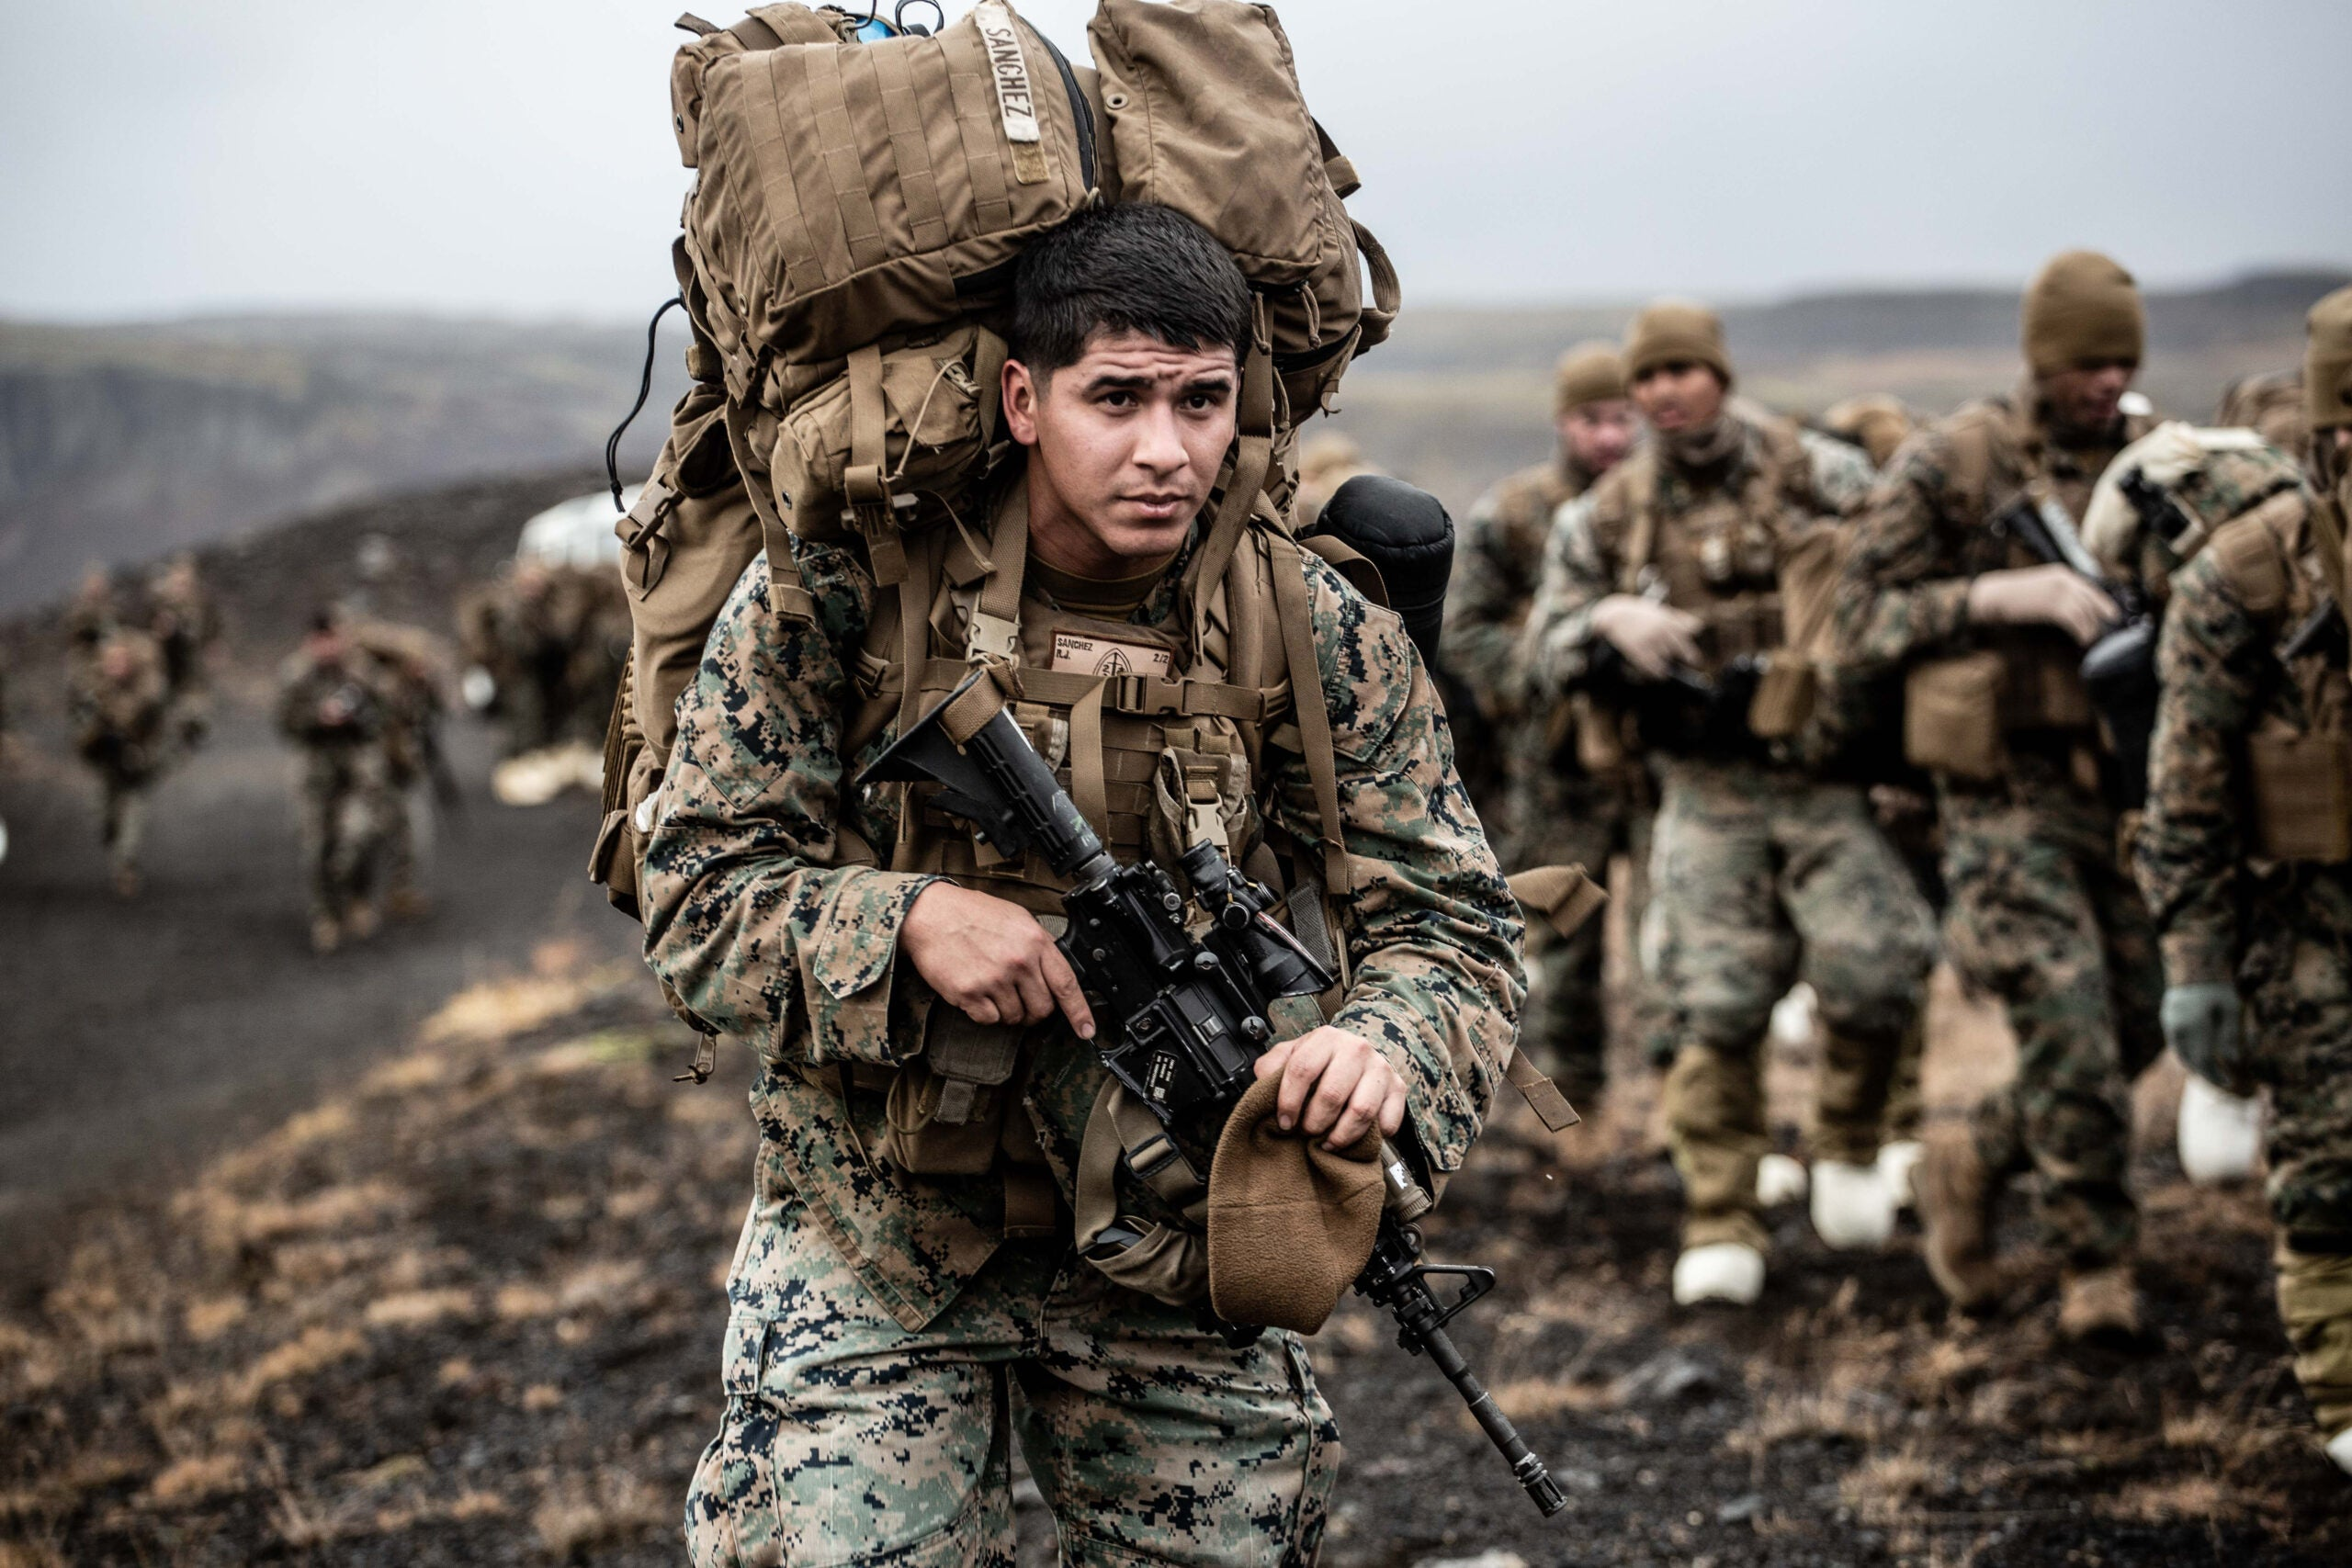 The Marine Corps is considering merging all infantry jobs into just one MOS